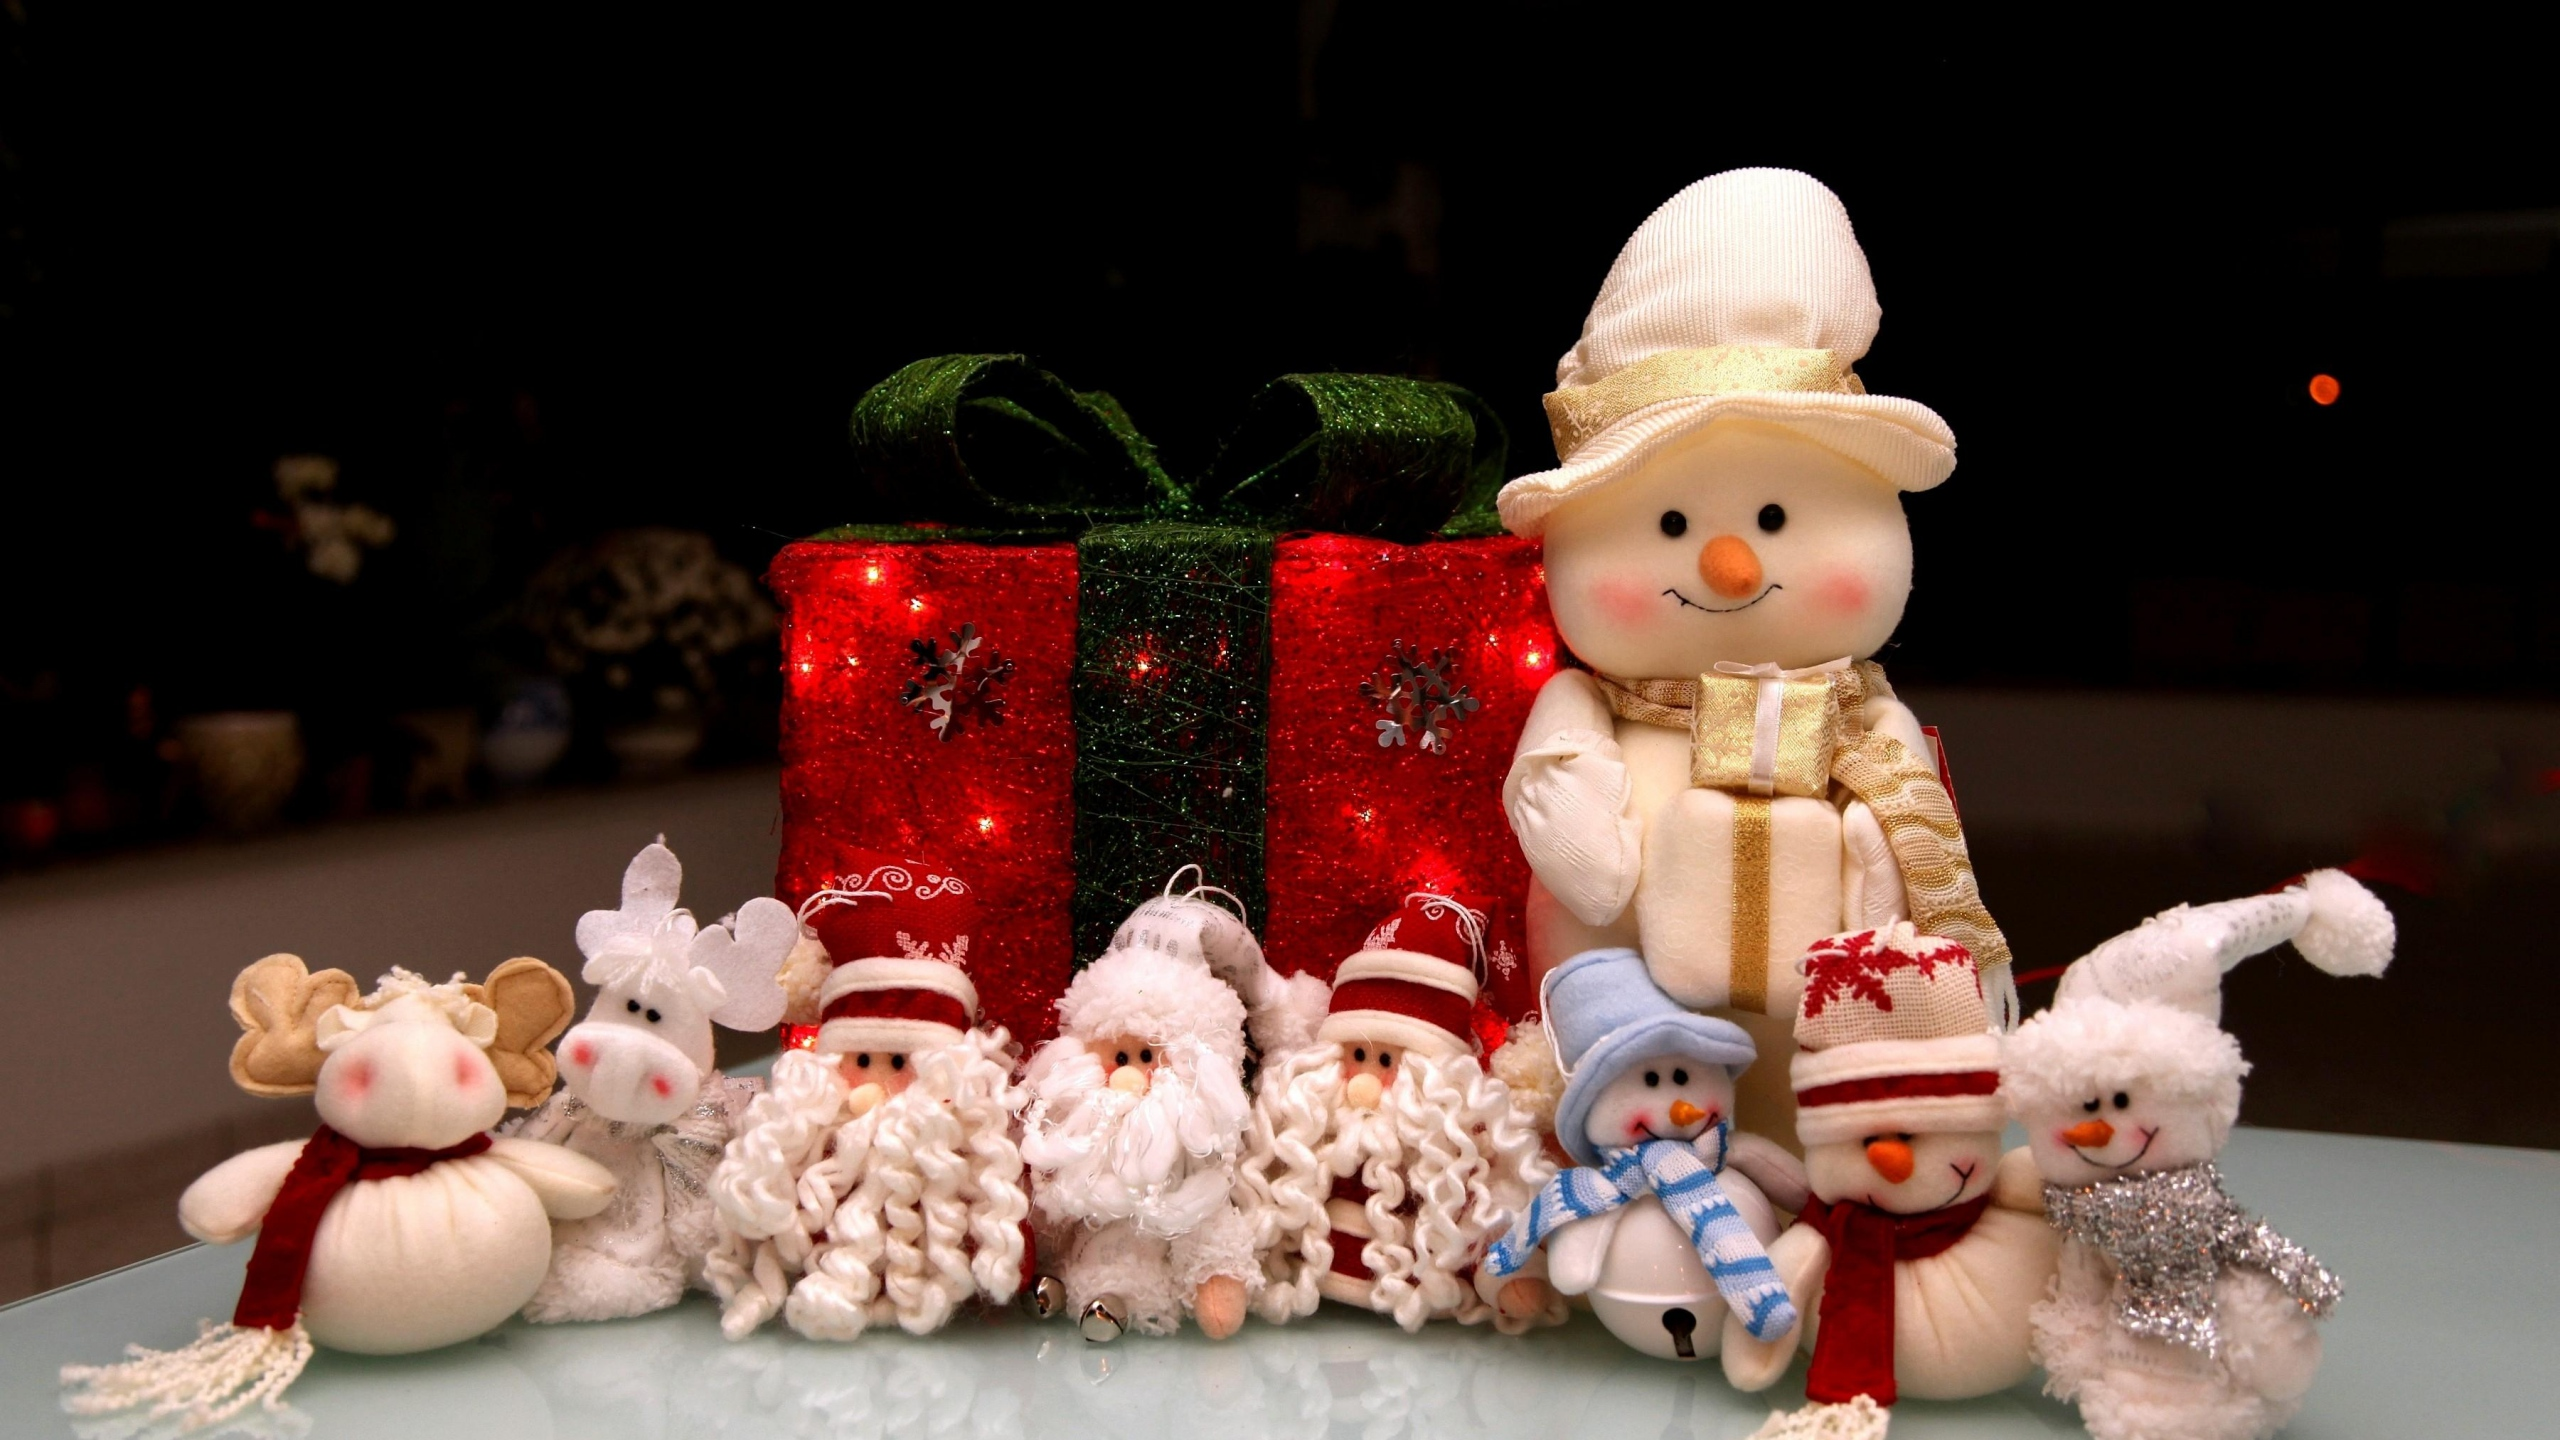 2560x1440 Wallpaper new year, holiday, christmas, snowmen, santa claus, gifts,